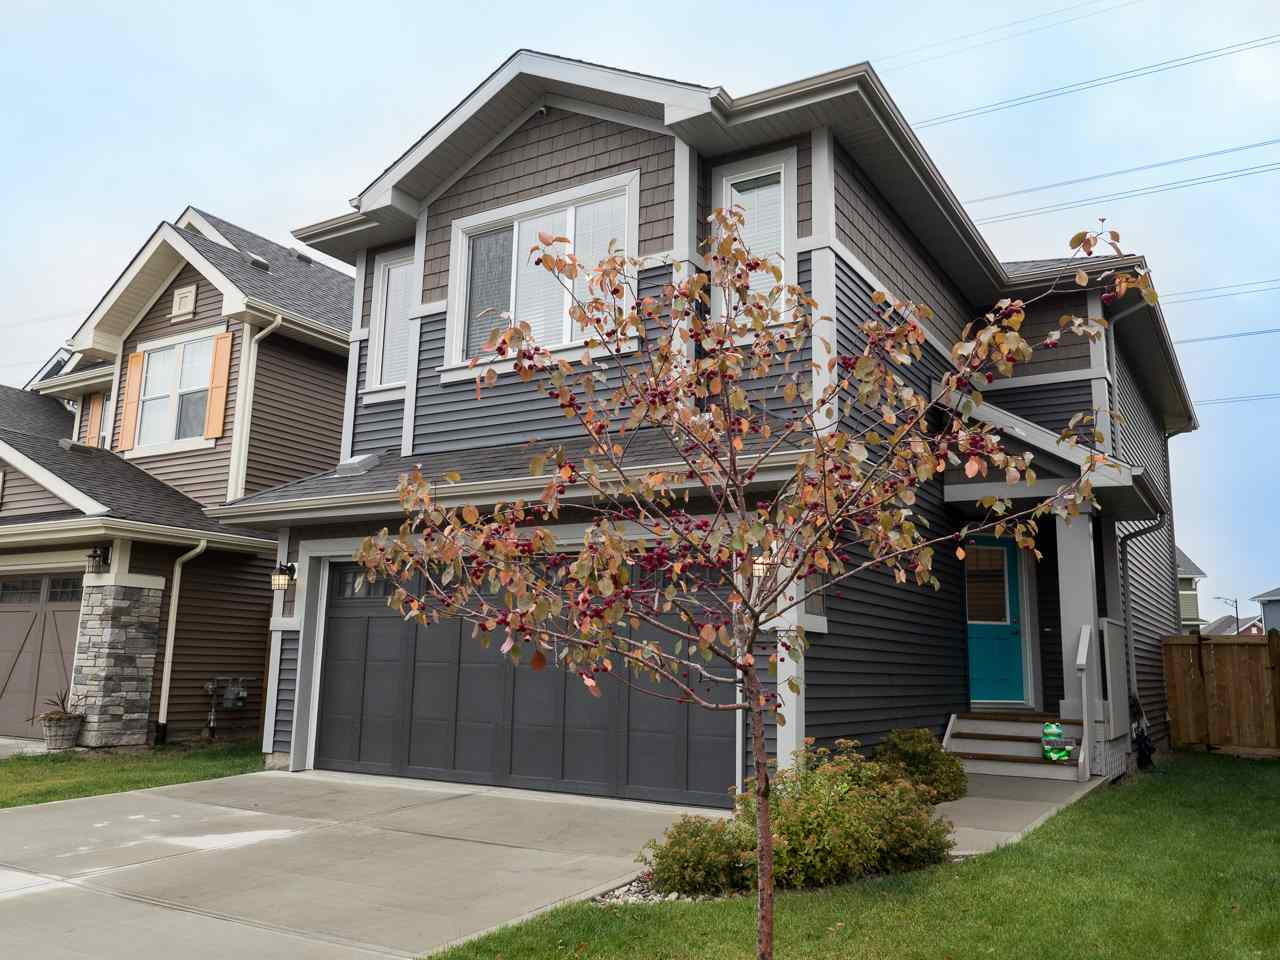 Main Photo: 4315 CRABAPPLE Crescent in Edmonton: Zone 53 House for sale : MLS® # E4083051